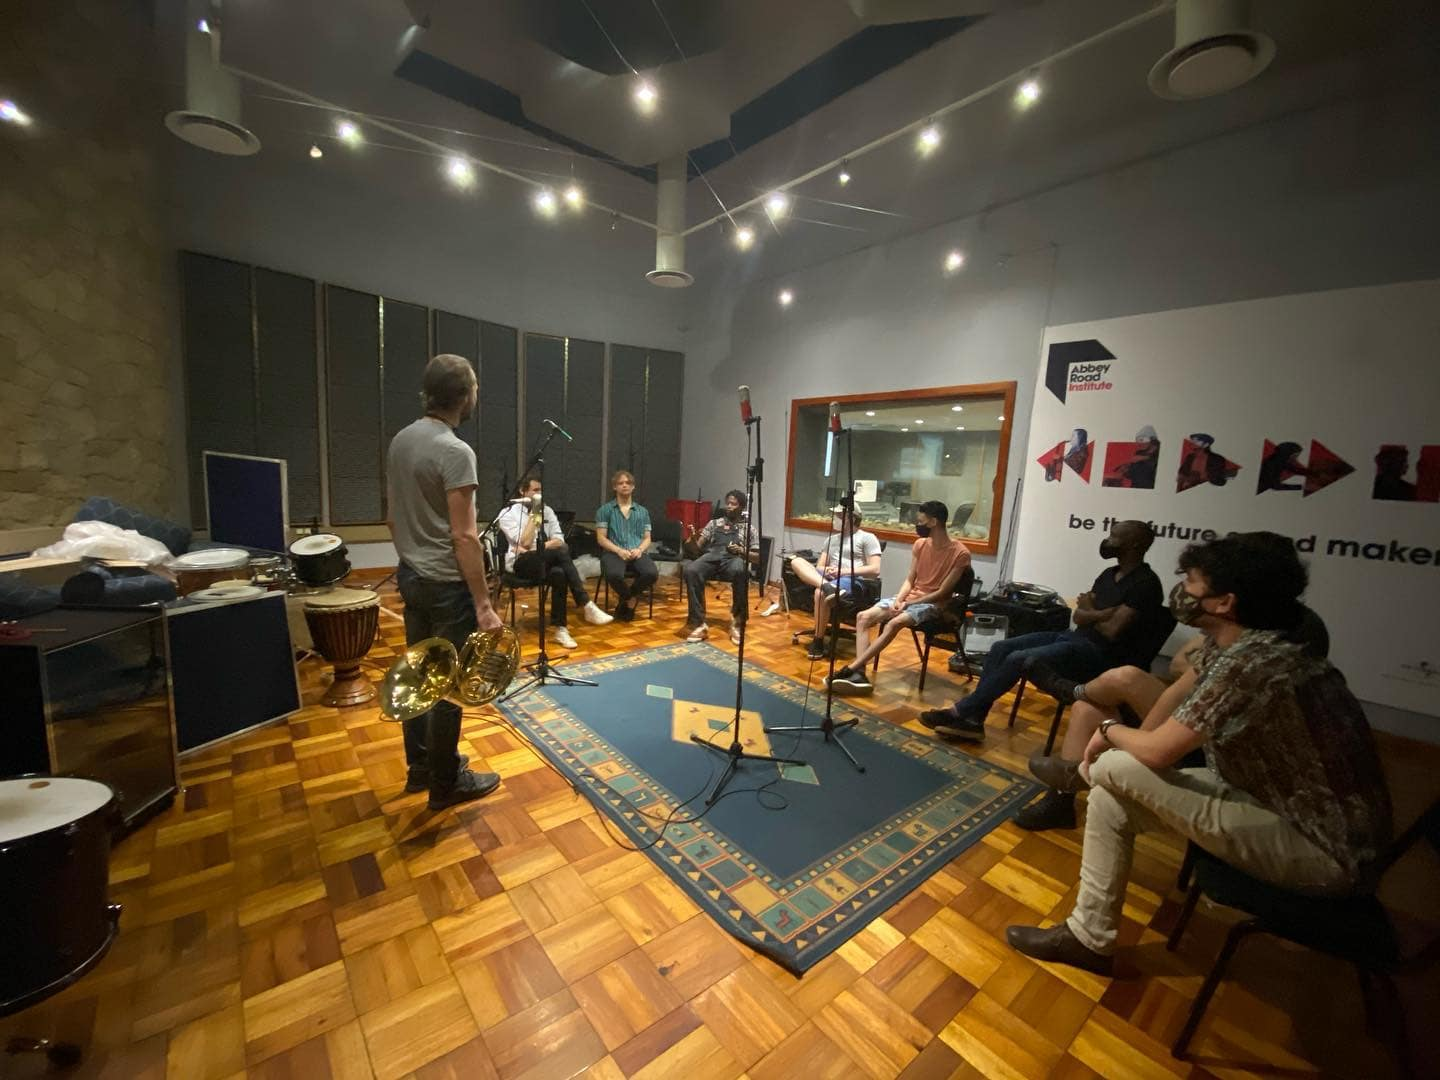 Abbey Road Institute Johannesburg, study sound engineering, producer